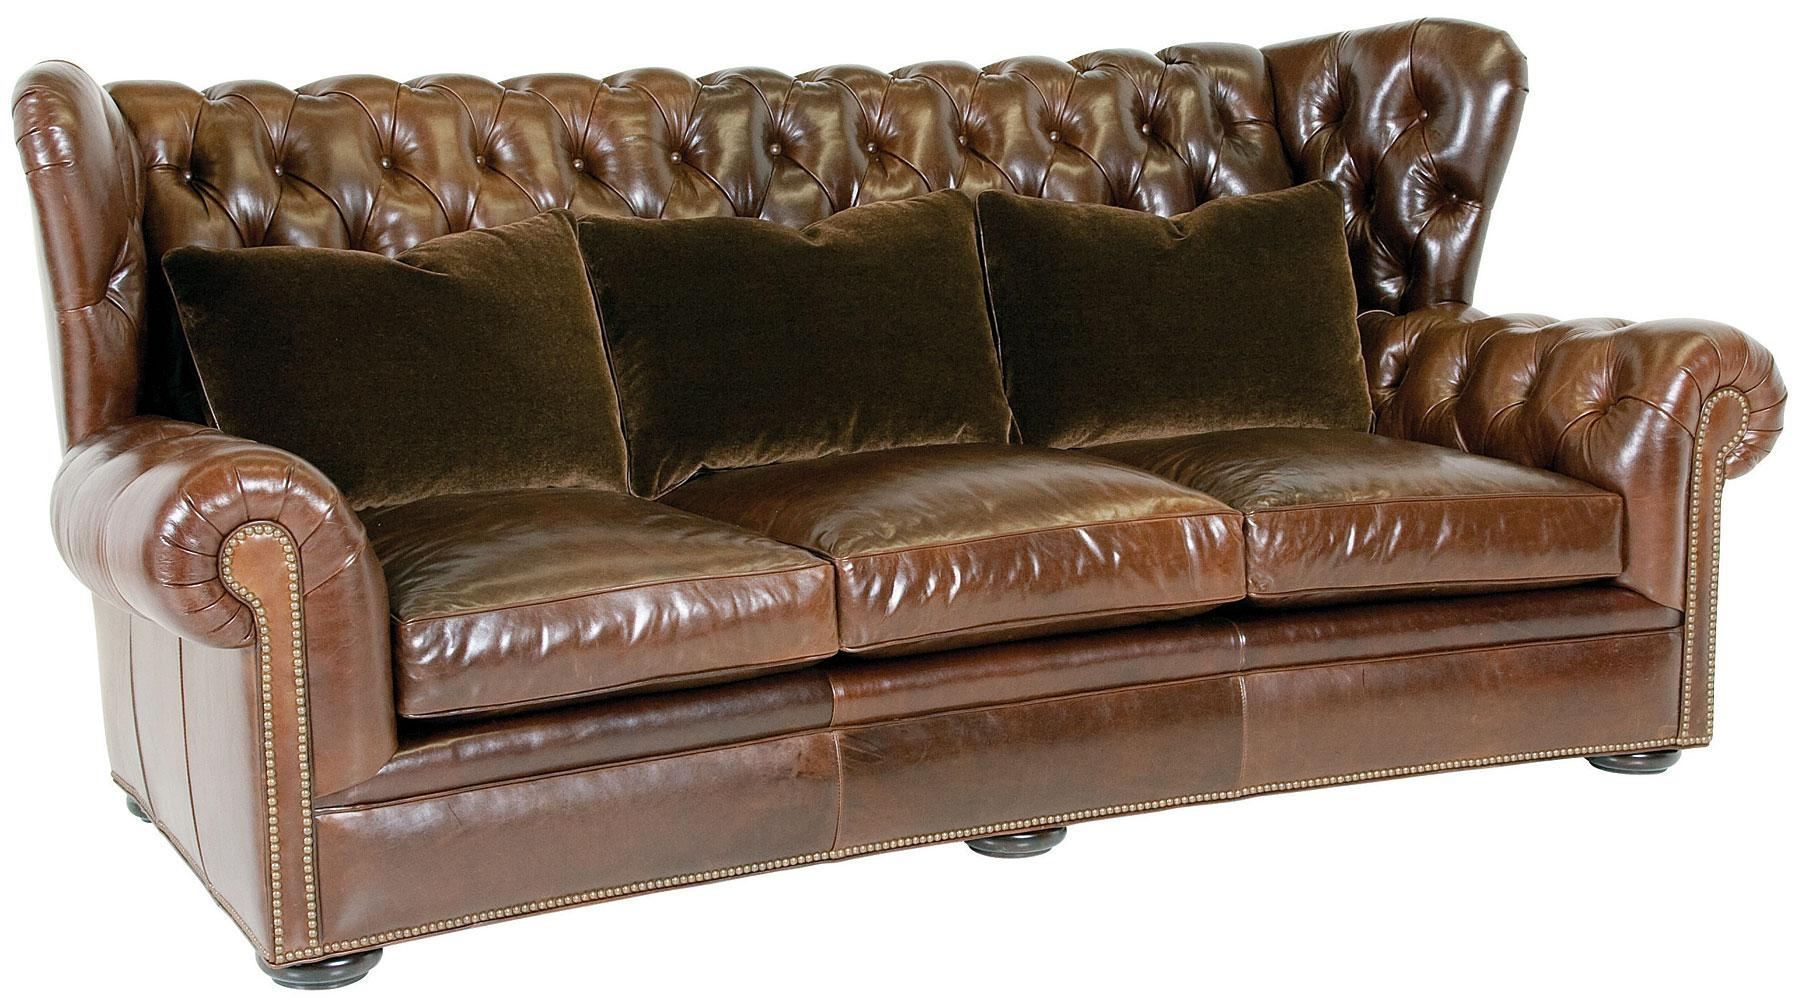 Storage Chesterfield Tufted Leather Sofa Brass Nailhead Trim For Tufted Leather Chesterfield Sofas (View 9 of 20)